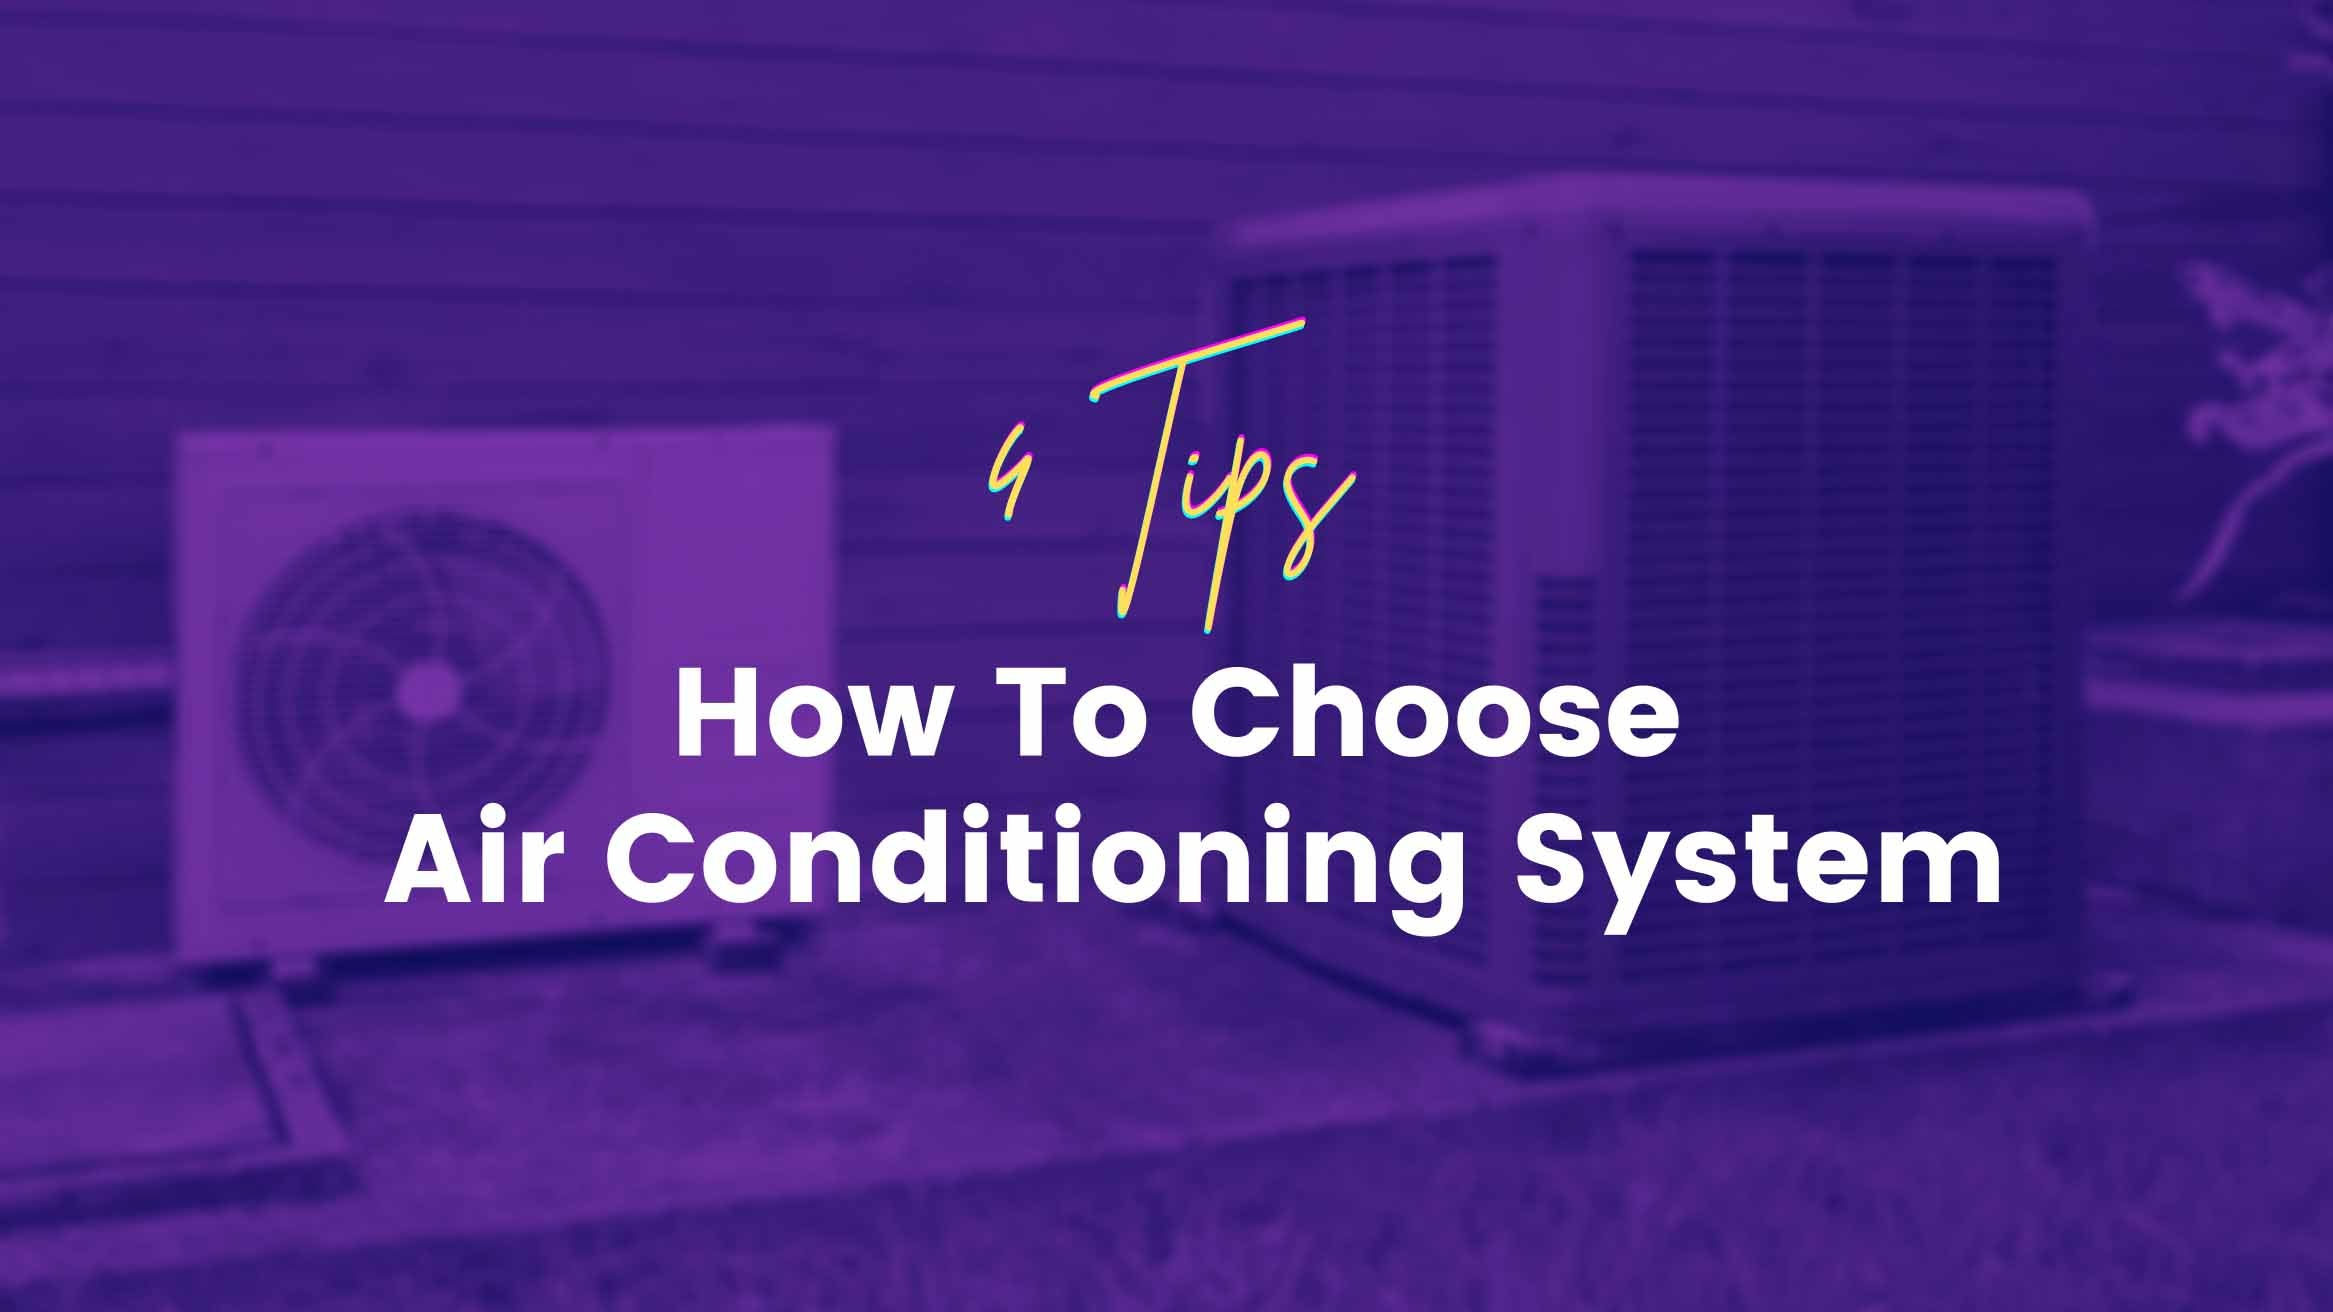 4 Tips On How To Choose Air Conditioning System